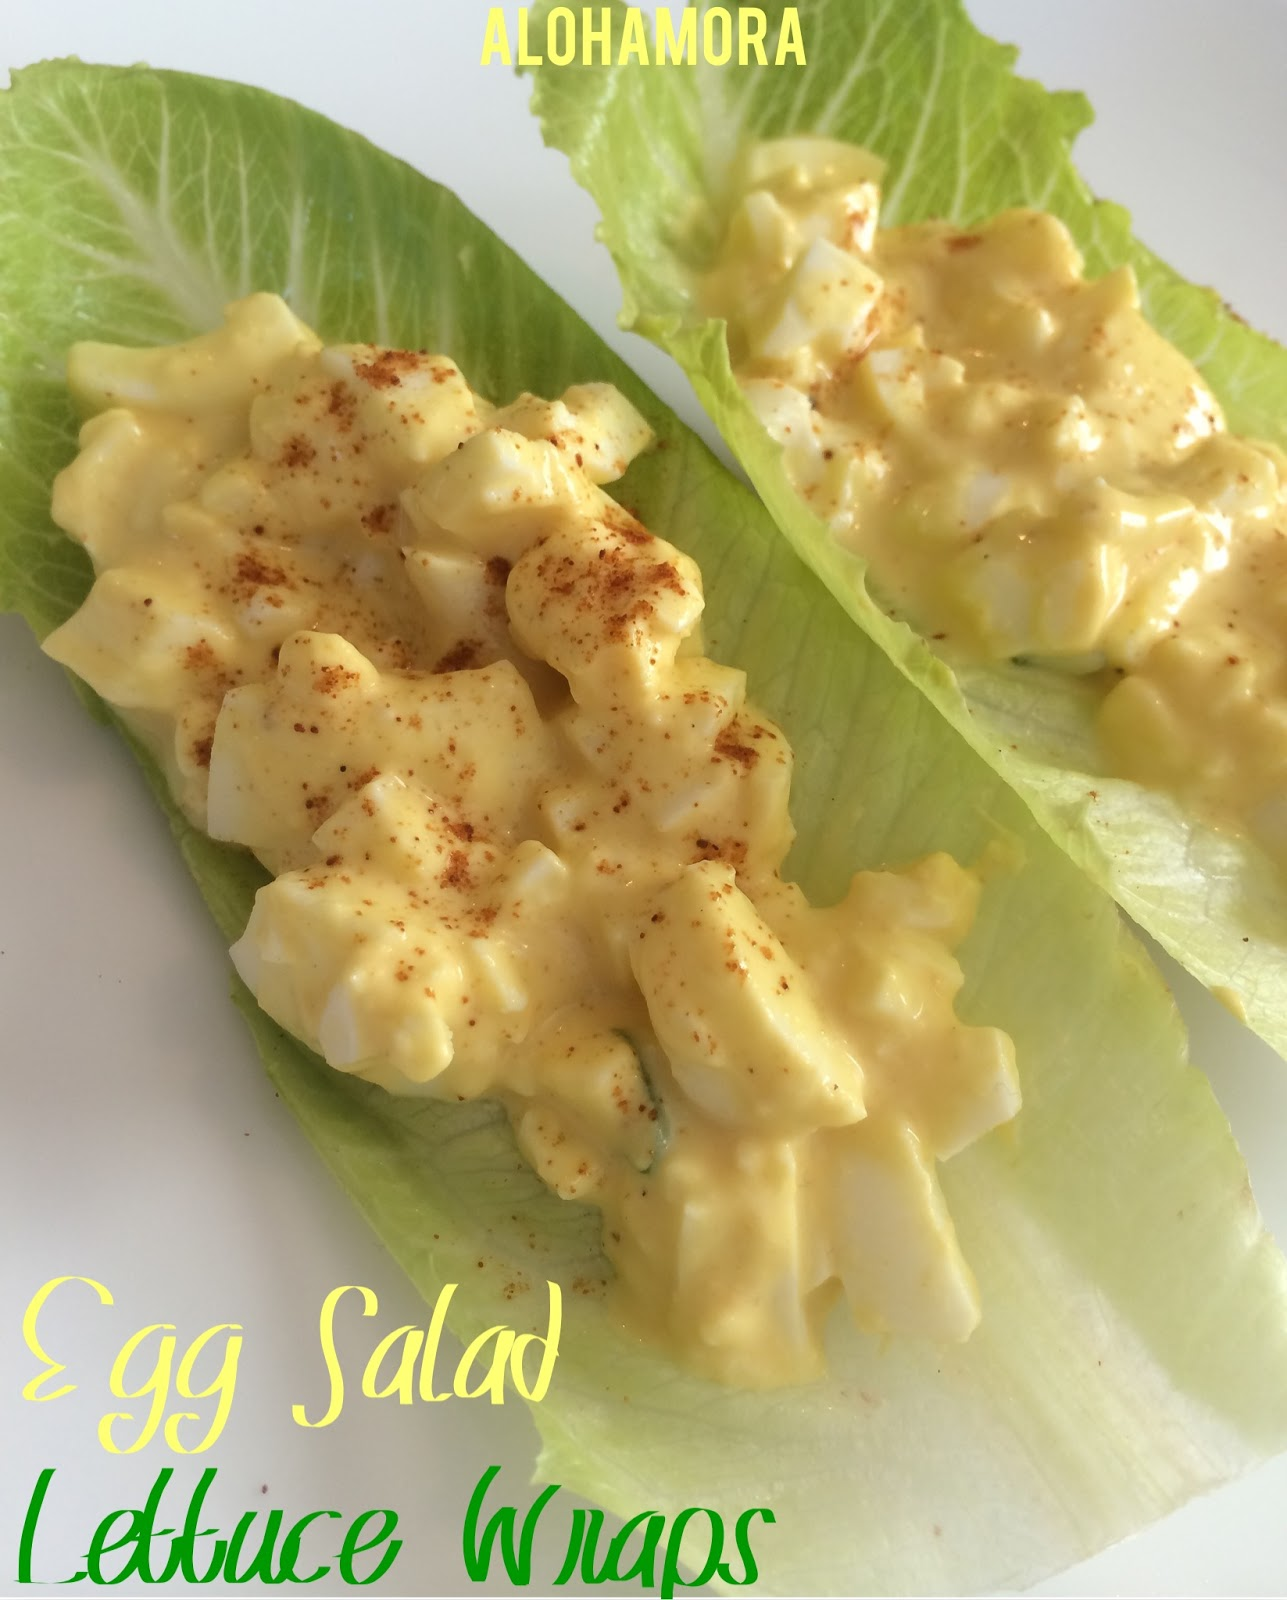 Classic egg salad just the way grandma made them, but on crisp lettuce leafs for a healthy touch.  Quick and easy lunch or dinner full of protein, and it's a great way to use up leftover hard boiled eggs from Easter. Alohamora Open a Book http://www.alohamoraopenabook.blogspot.com/